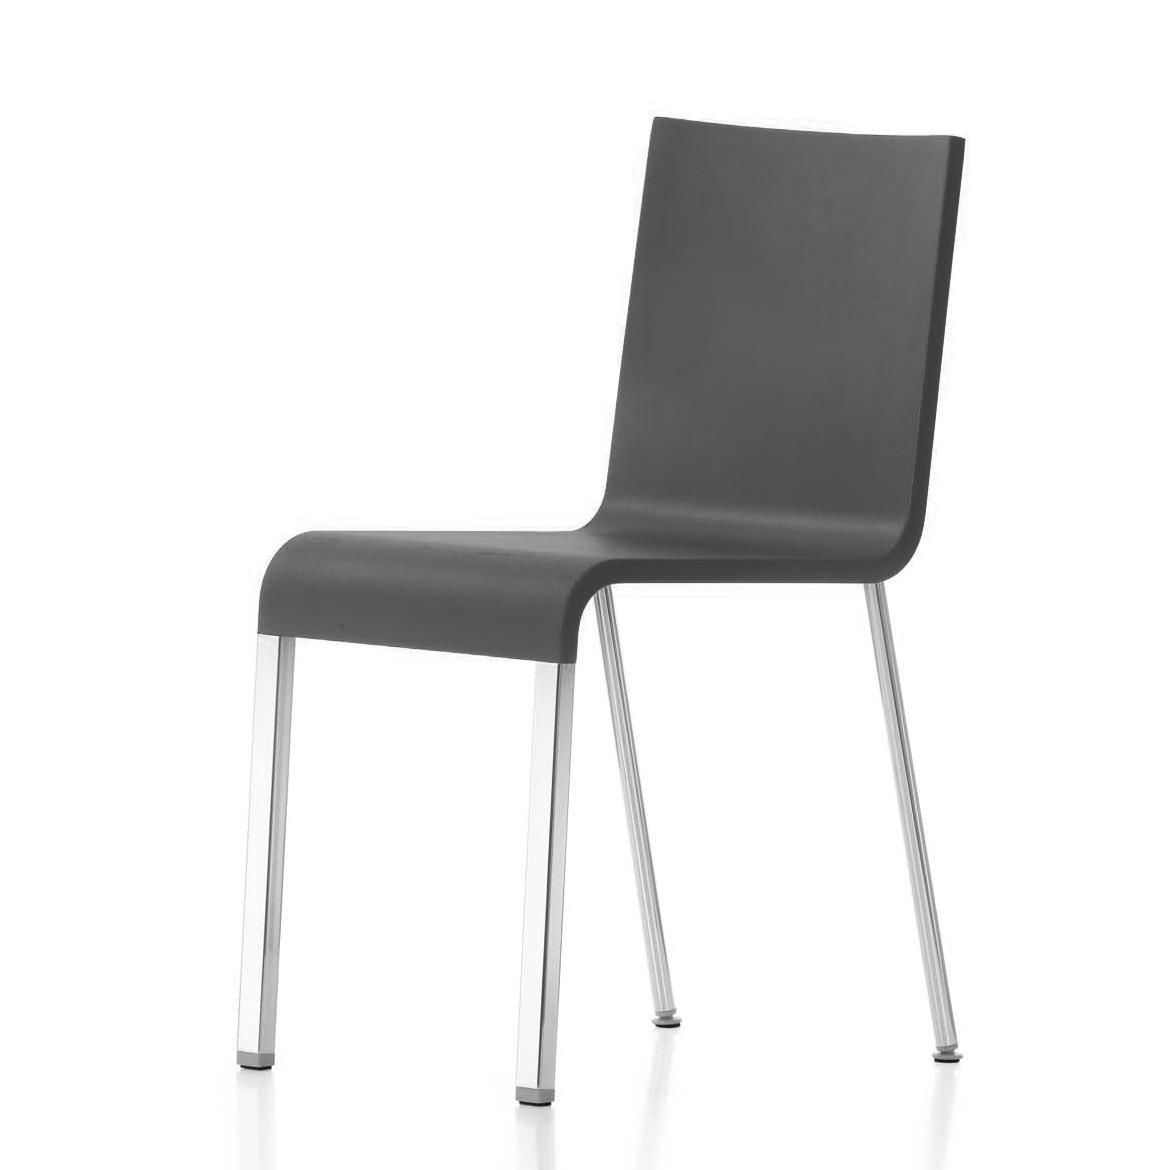 03 chaise non empilable vitra for Chaise empilable design